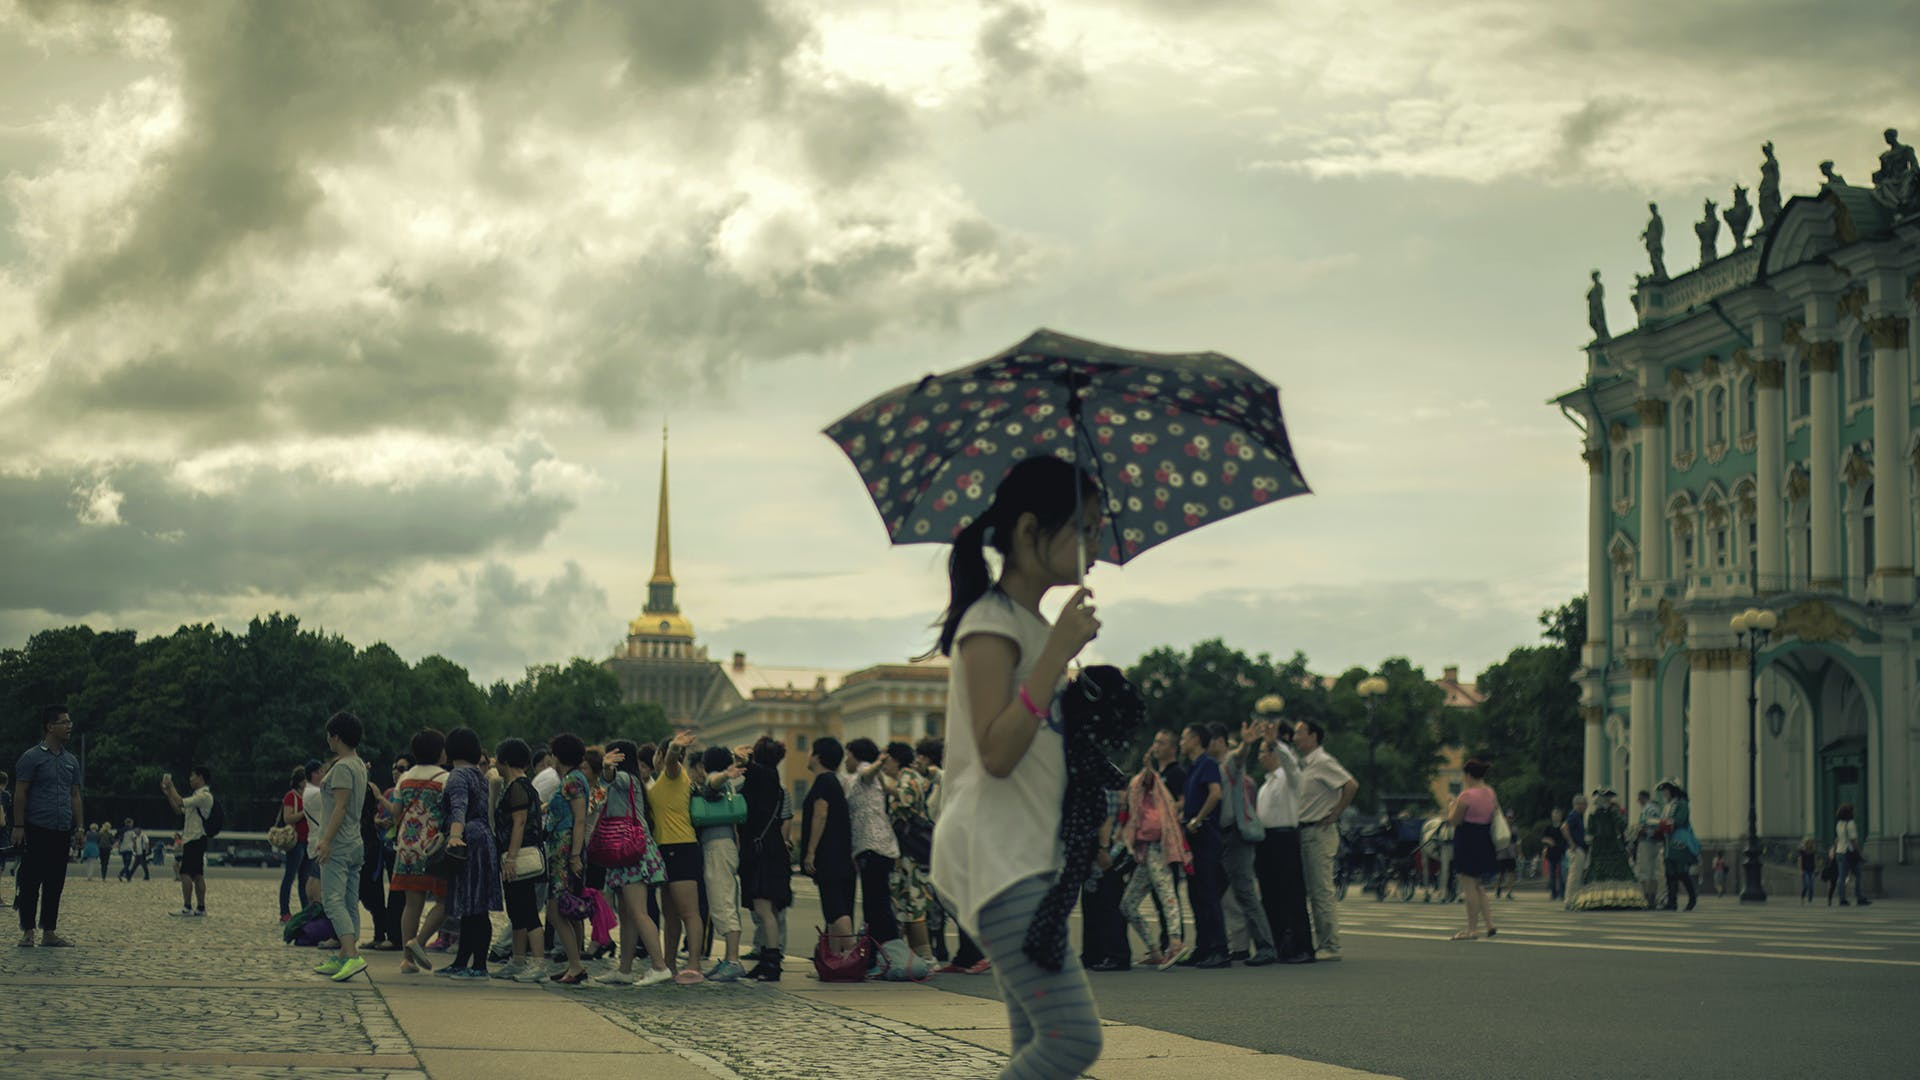 Free stock photo of city, people, sky, umbrella